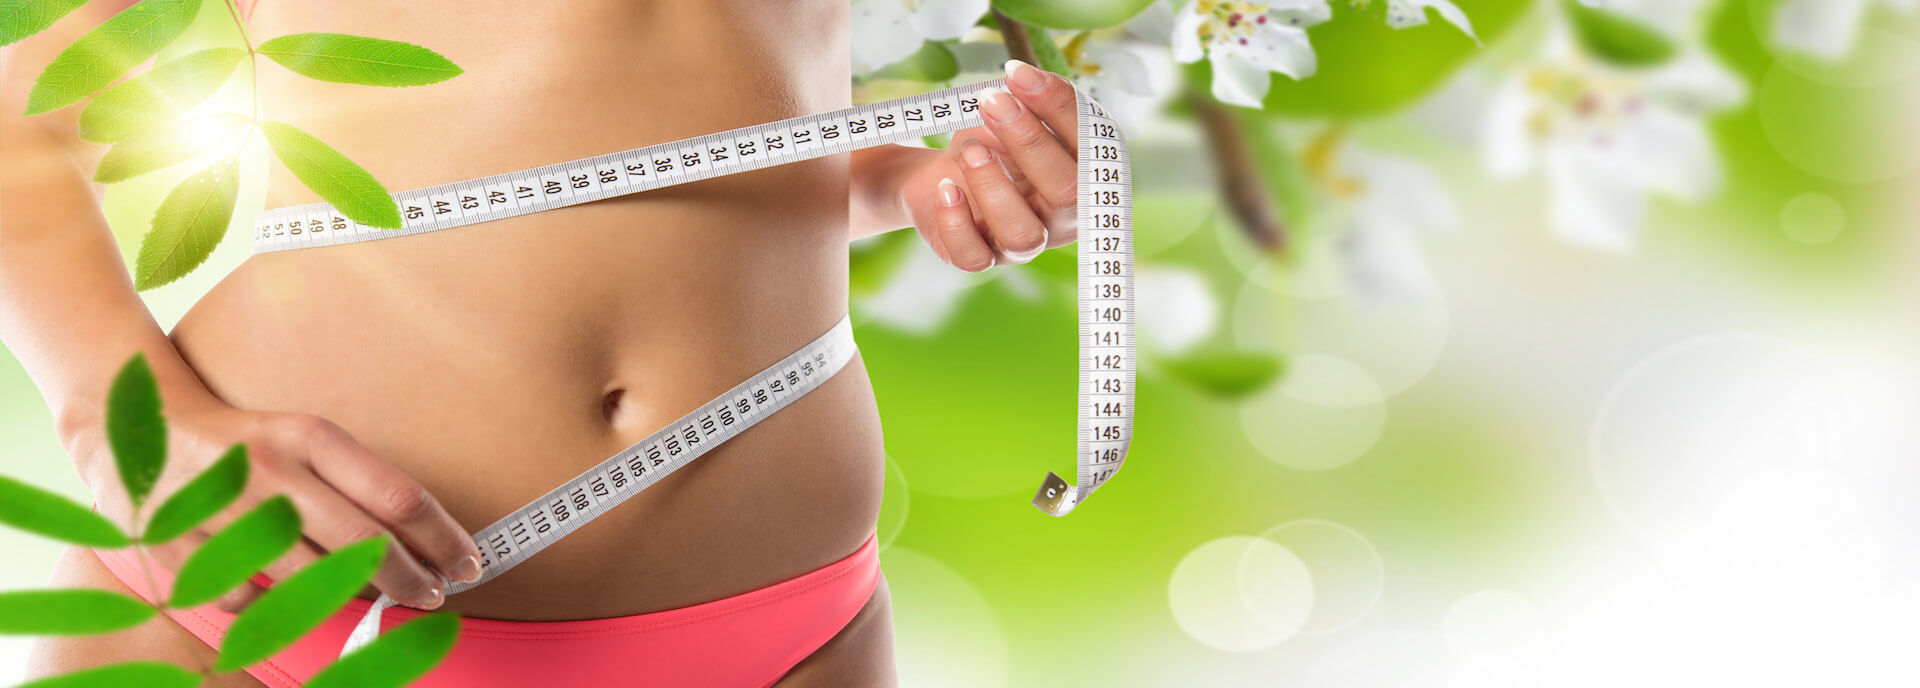 3 Simple Rules to Burn Belly Fat & Defeat Menopause